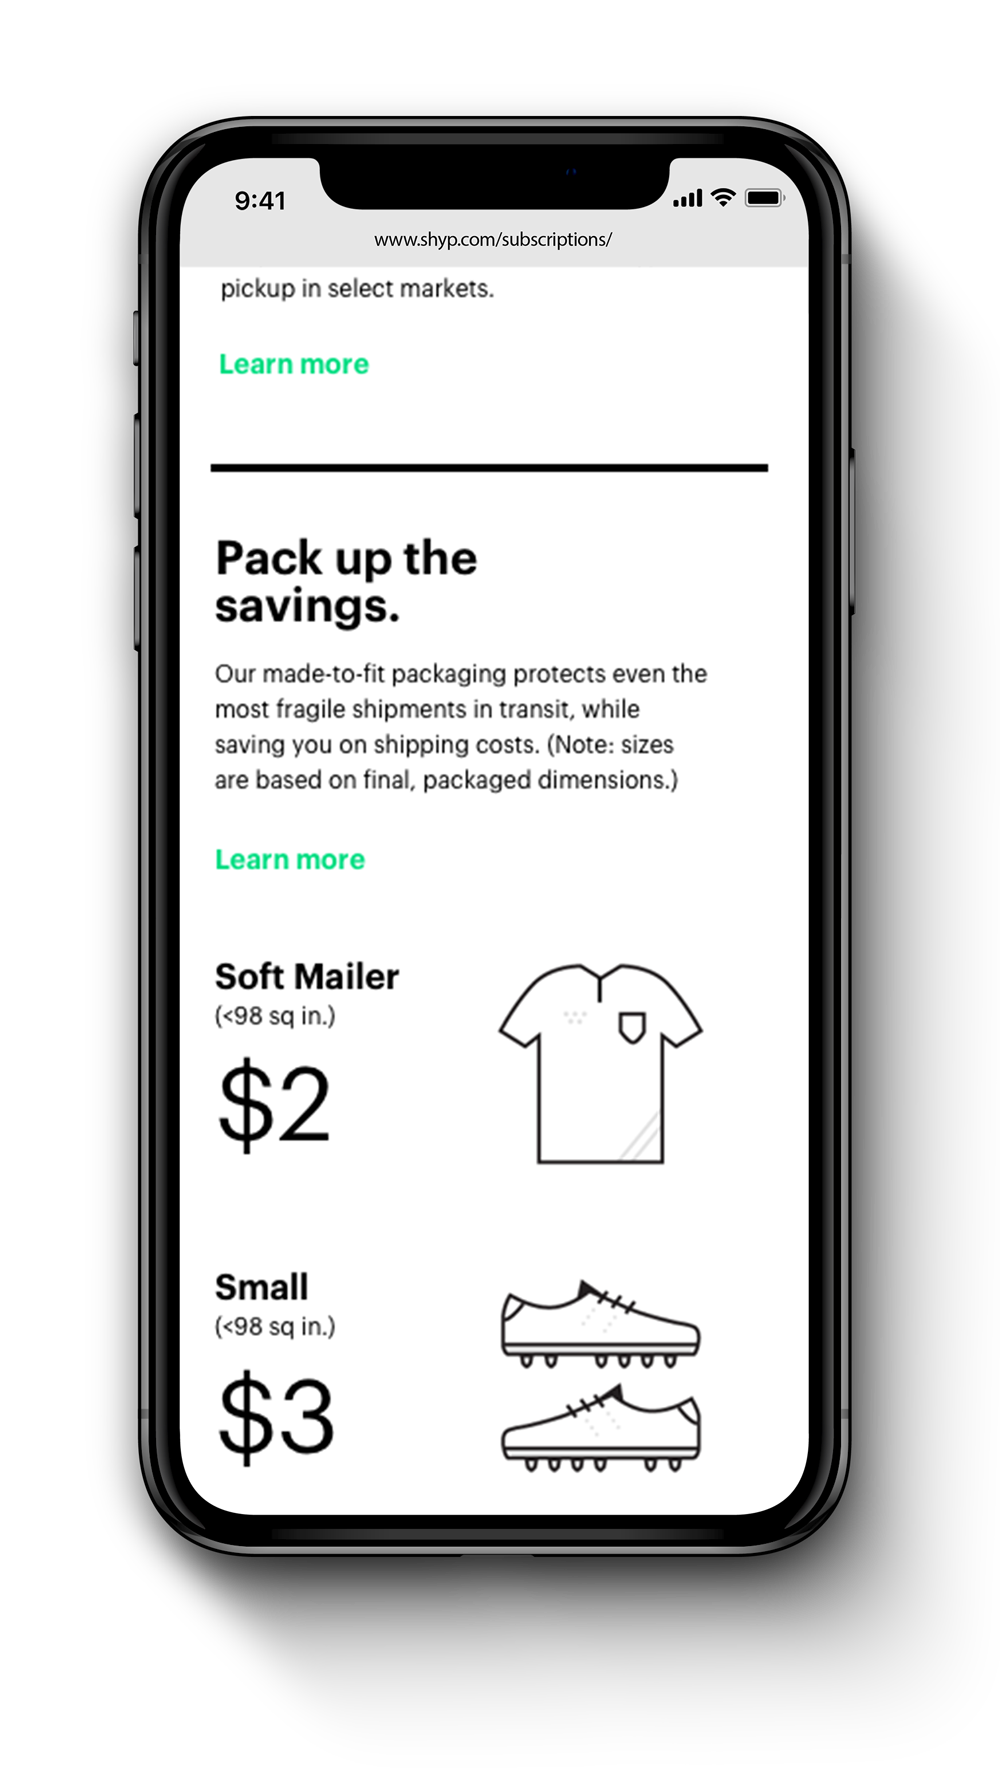 shyp_subscription_mobile_2.2